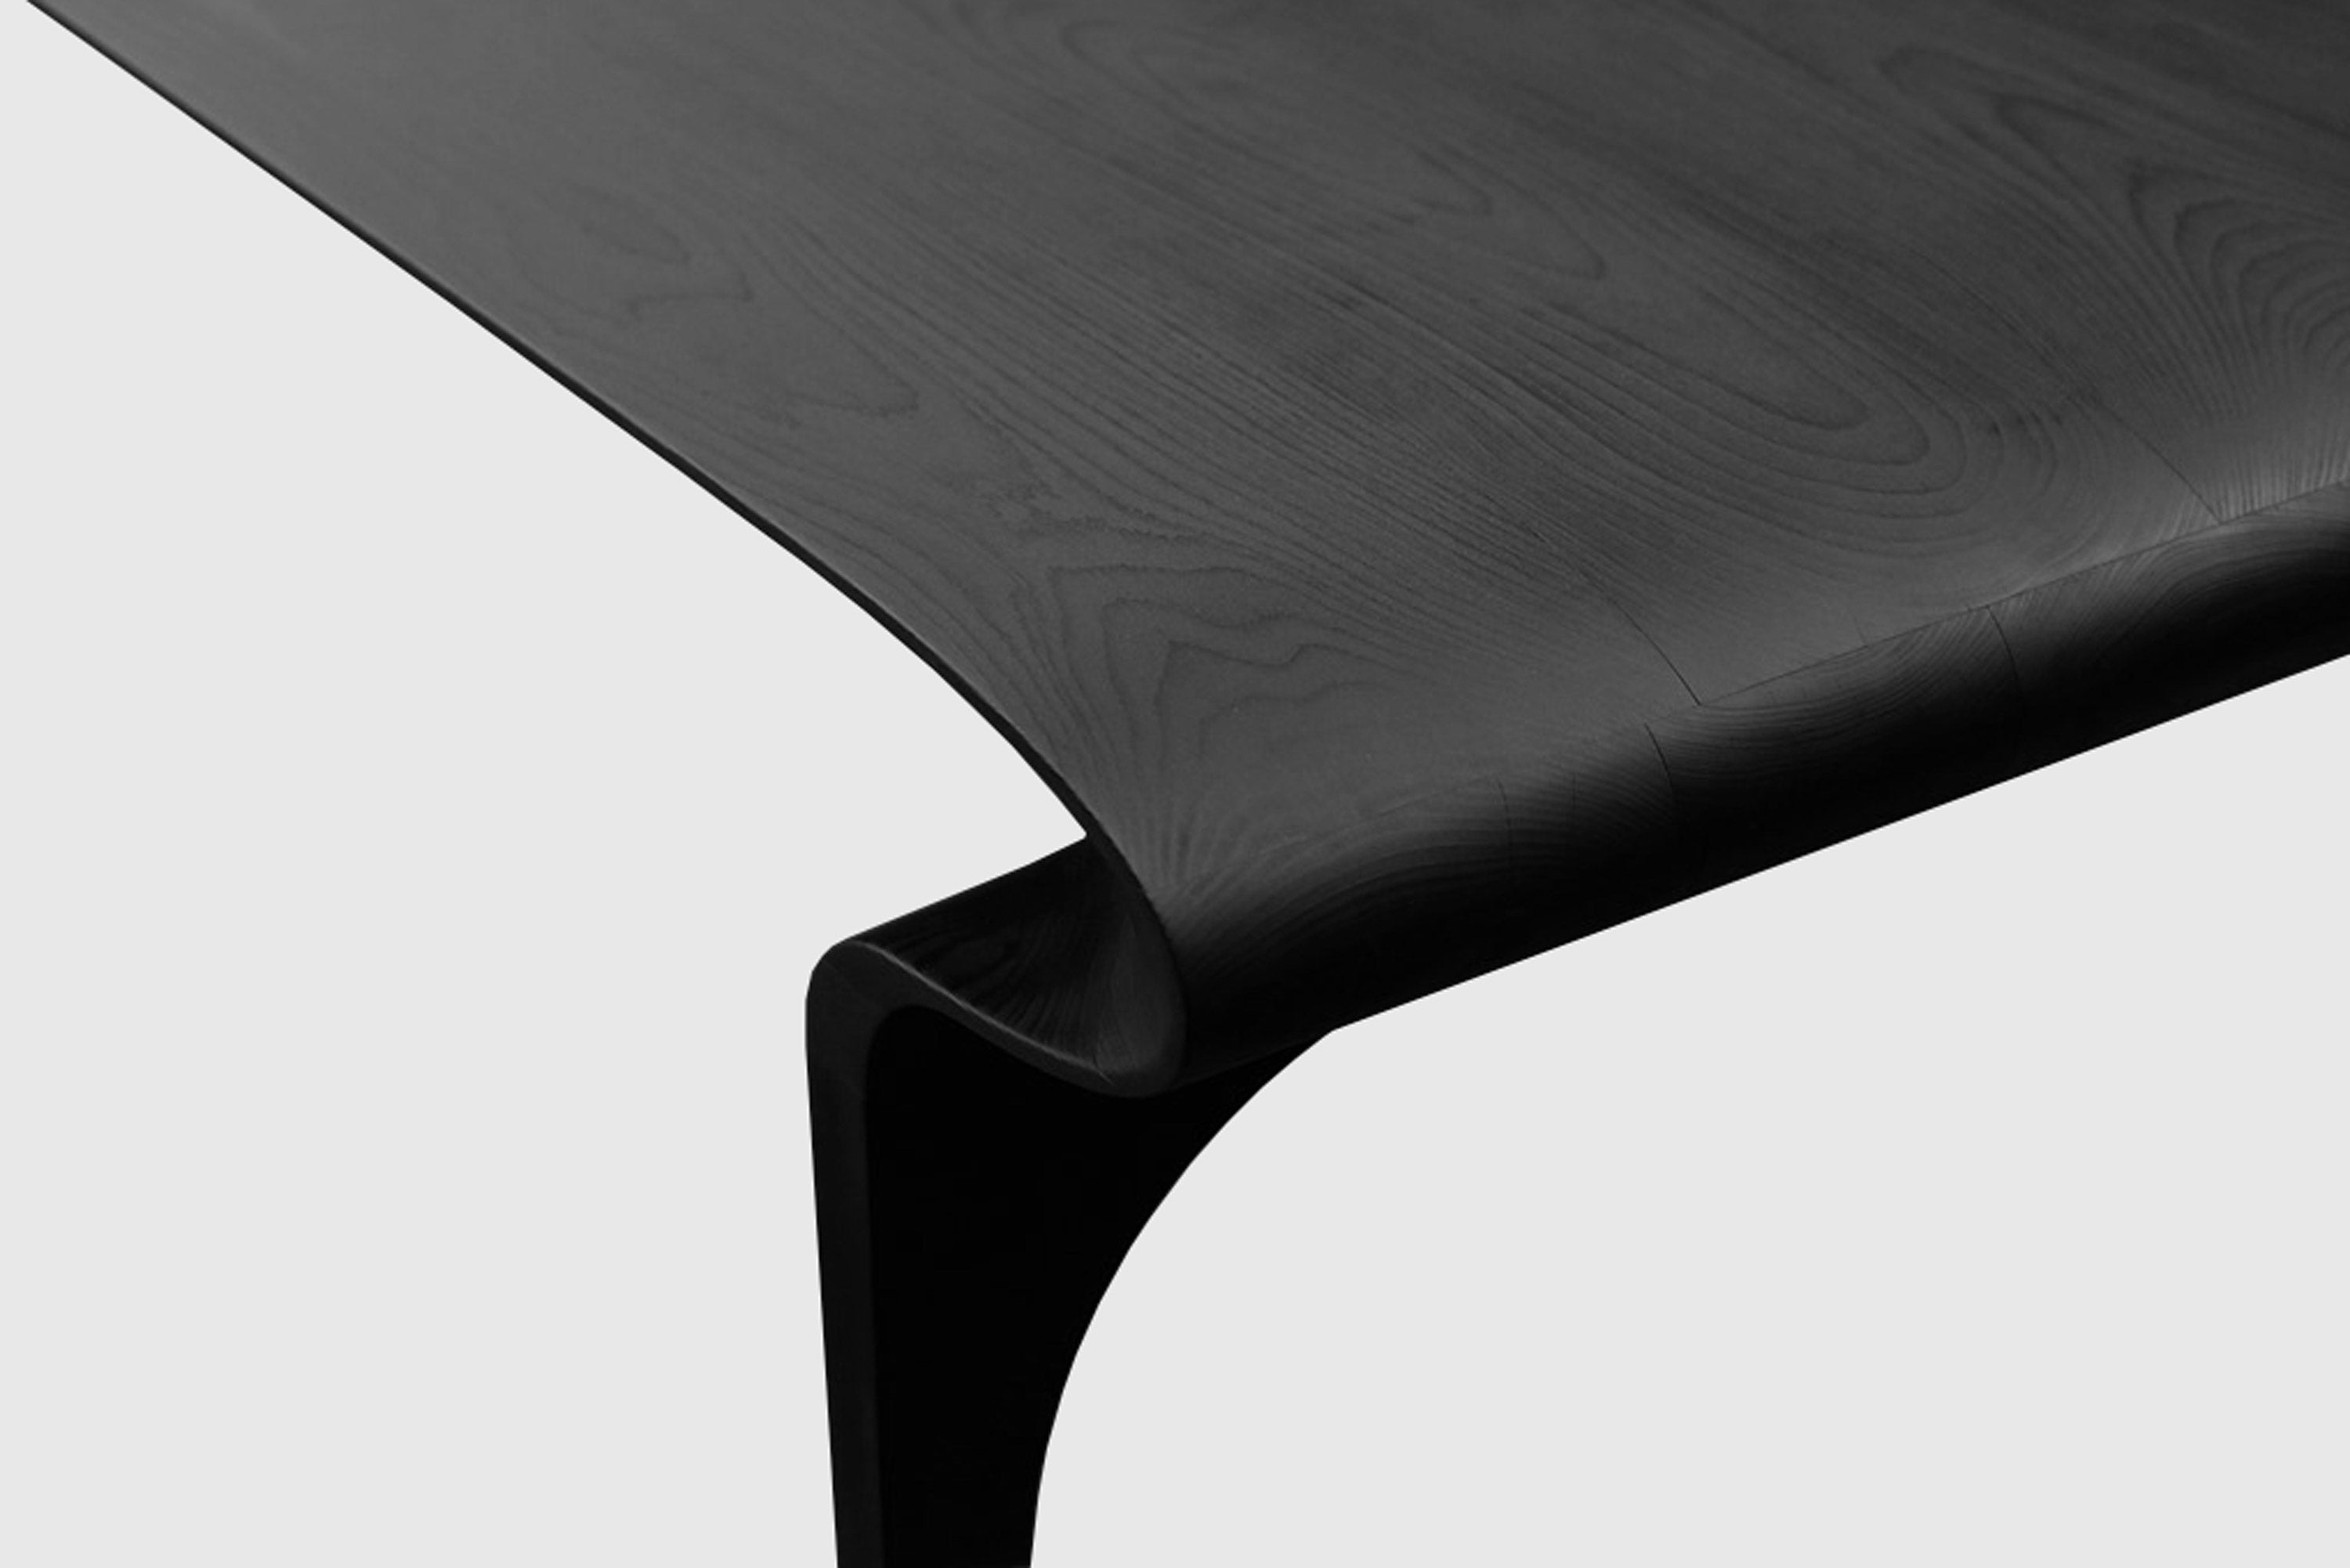 Bodo Sperlein Contour Table Shou Sugi Ban Furniture Design